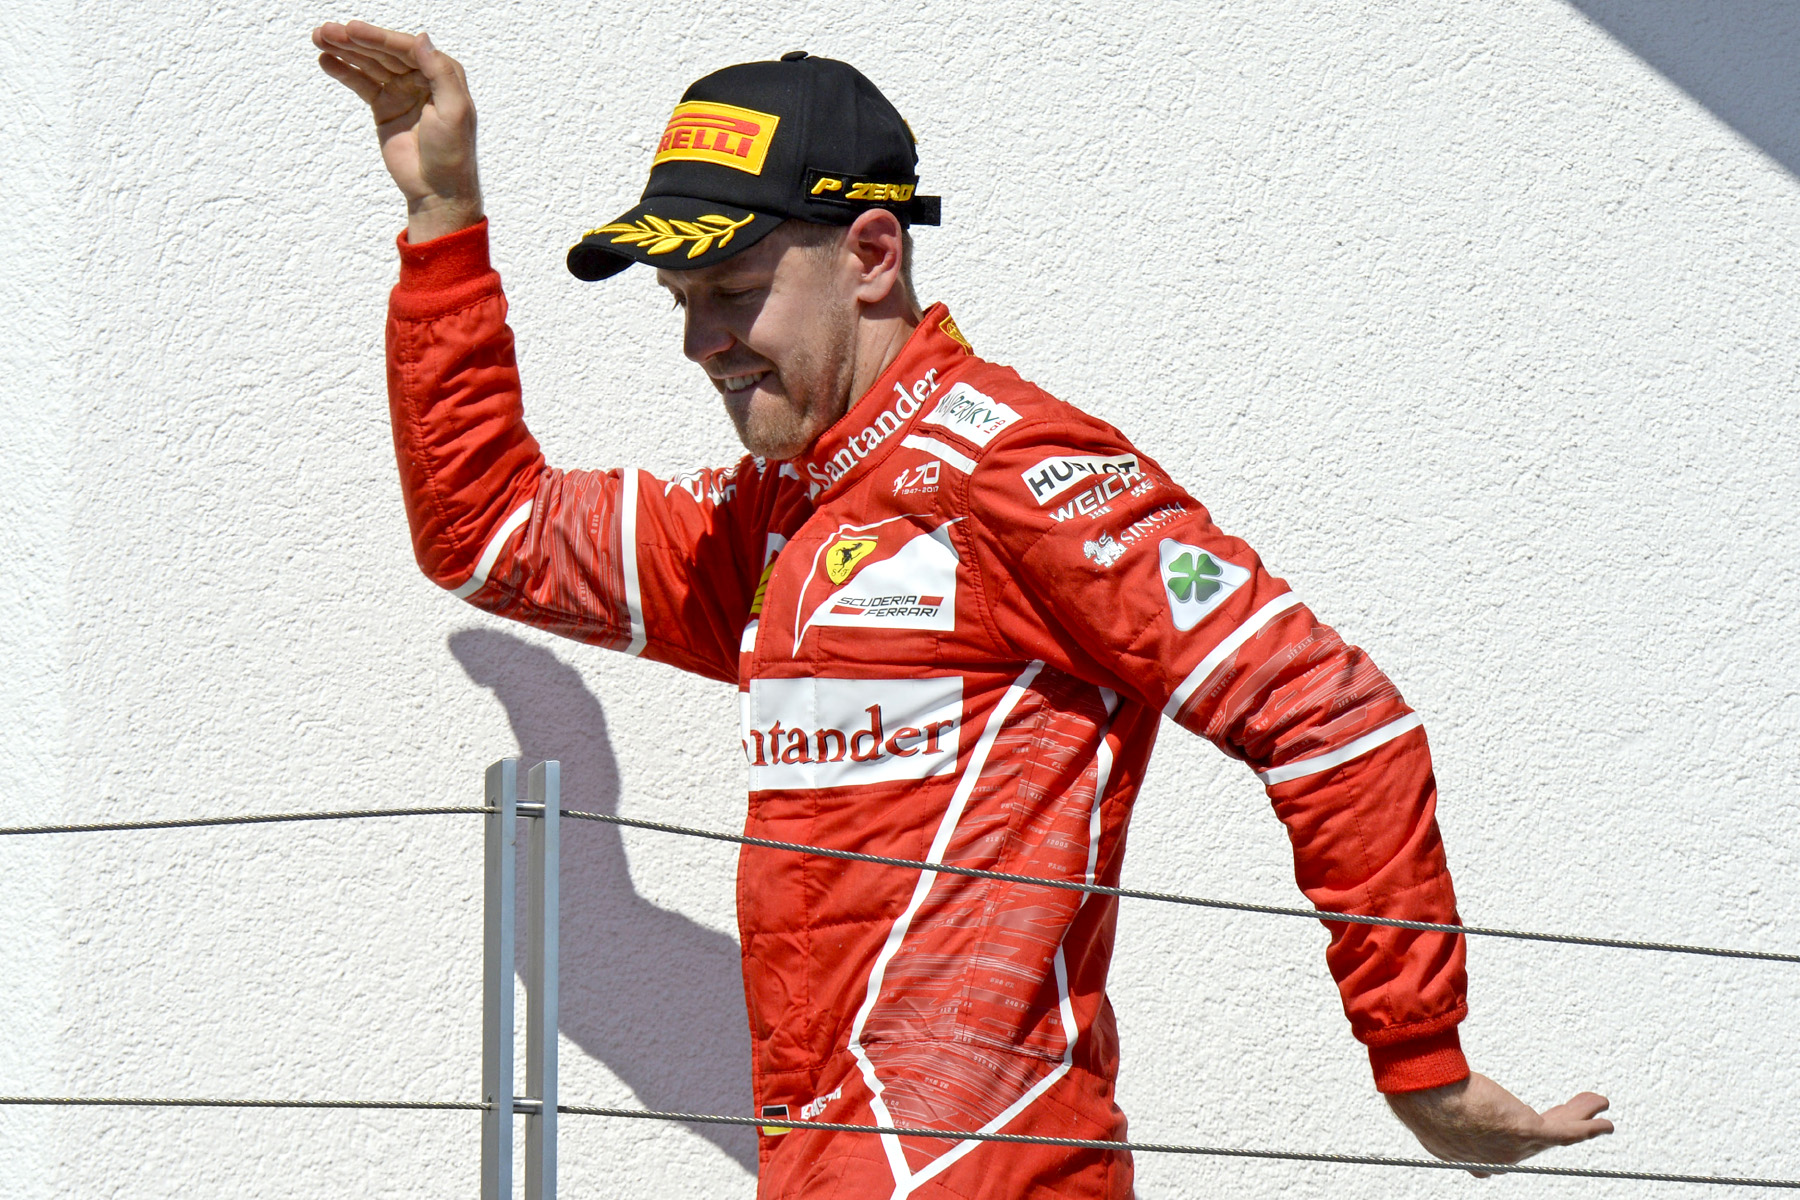 Sebastian Vettel celebrates victory on his way to the 2017 Hungarian Grand Prix podium.